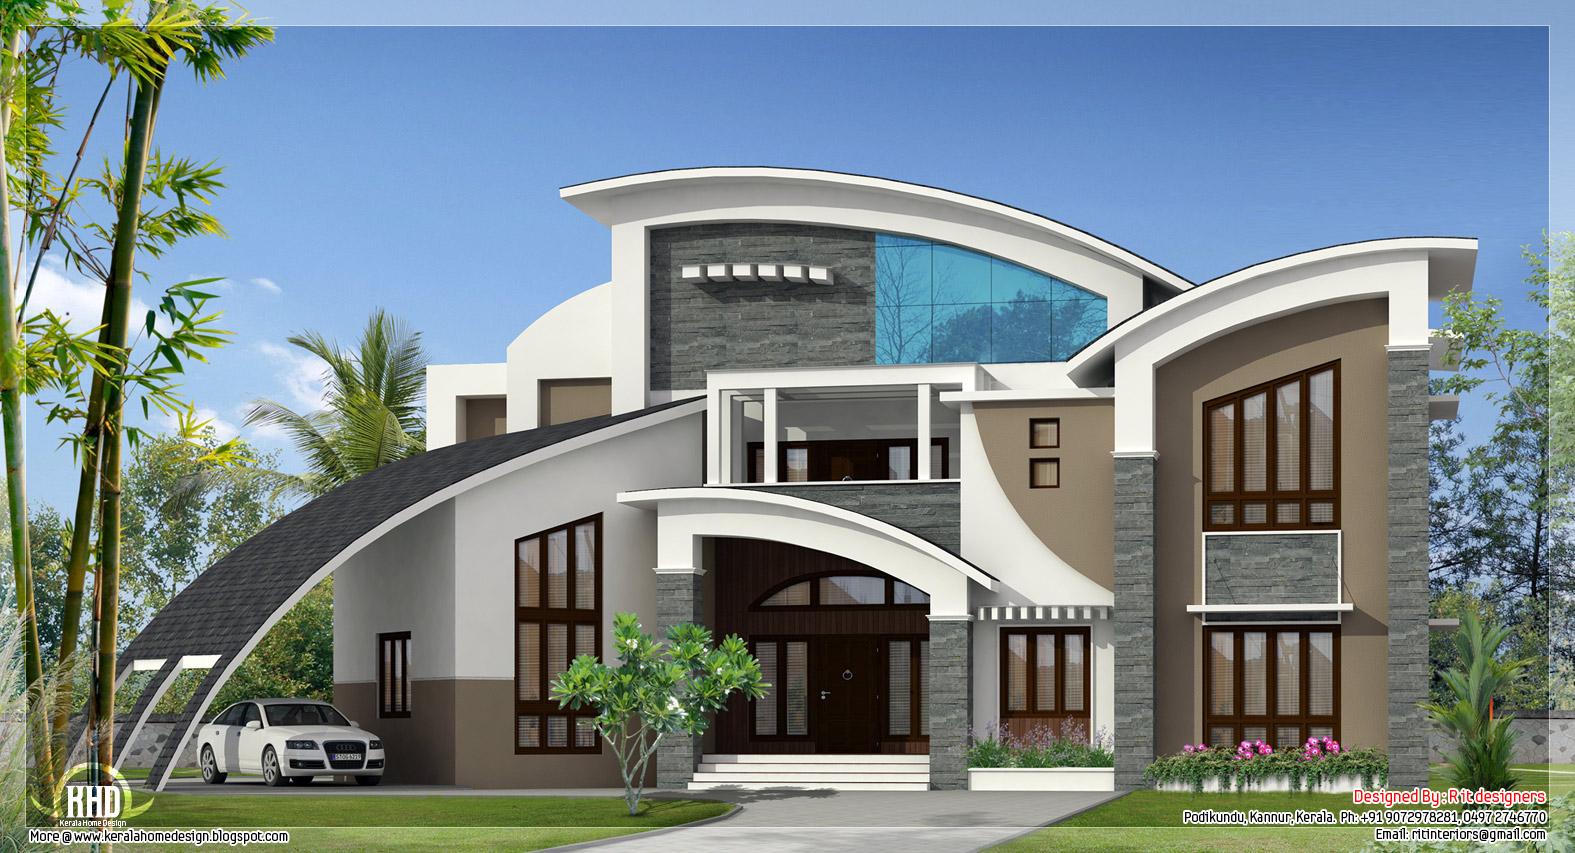 4 bedroom modern flat roof house keralahousedesigns for Architecture design a house